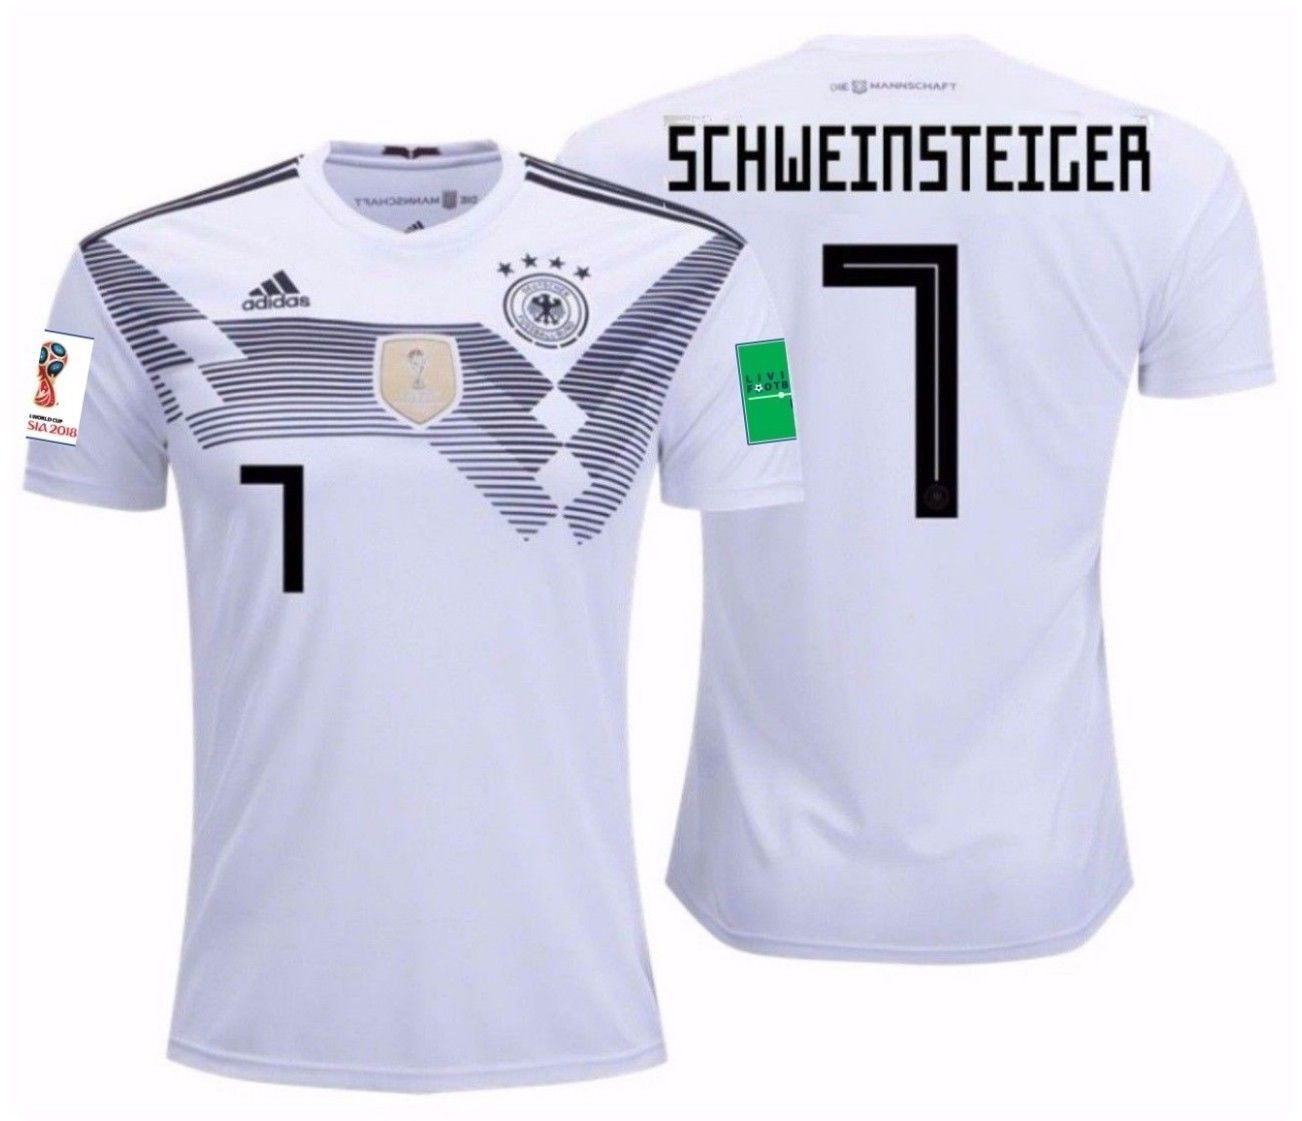 0e76b5b0fc4 Germany Soccer Jersey For Men, Women, or Youth - Custom Name and Number -  Refuse You Lose